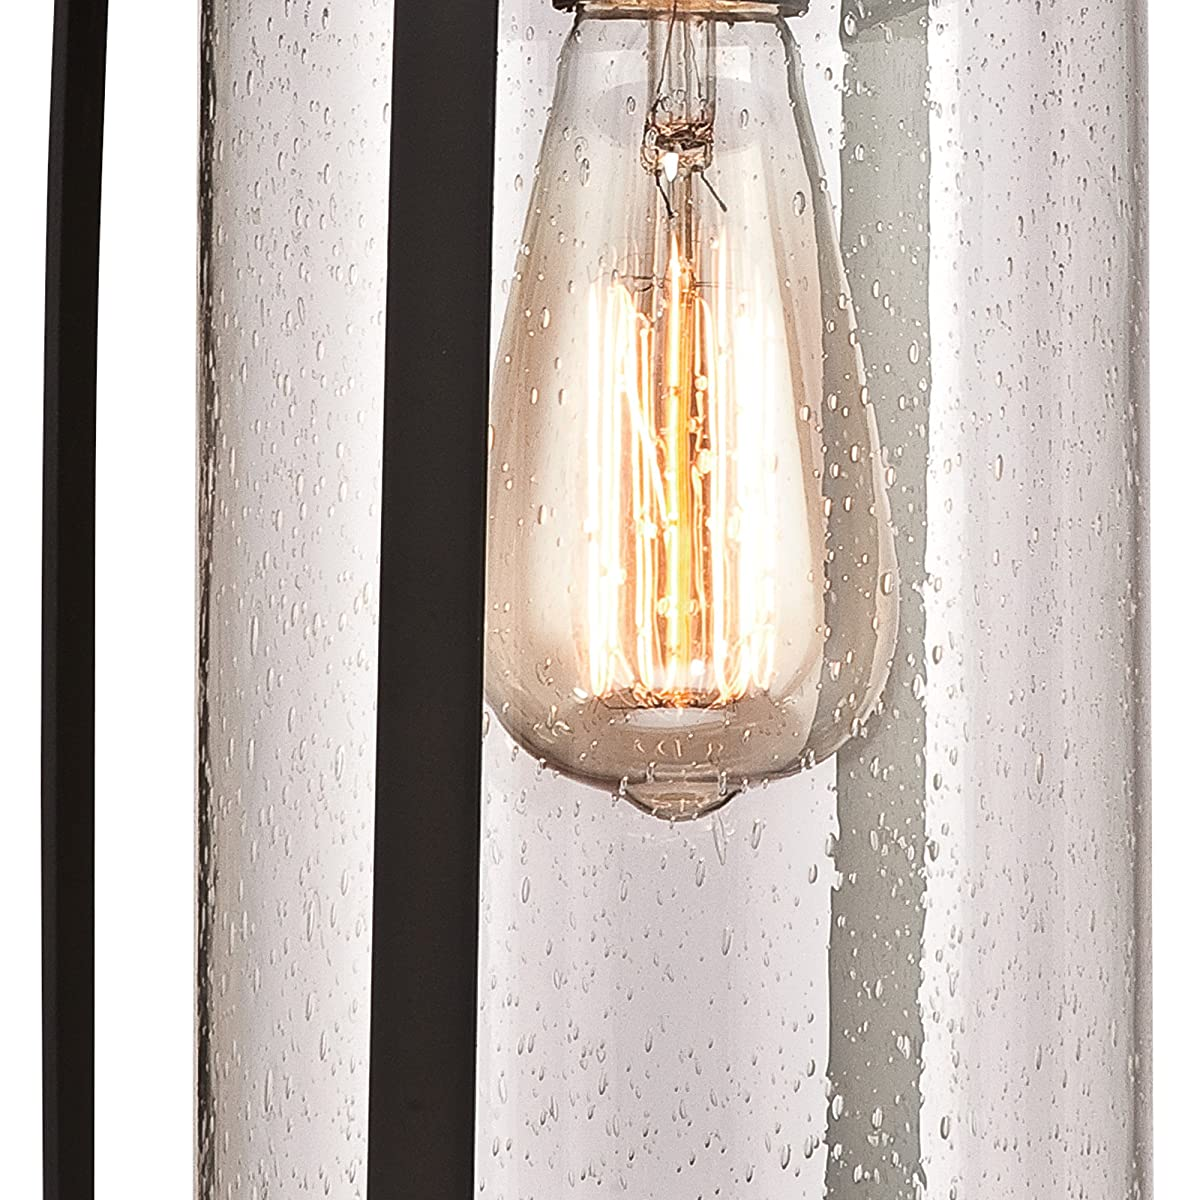 Westinghouse 6339400 Grandview One-Light Outdoor Pendant, Oil Rubbed Bronze Finish with Highlights and Clear Seeded Glass